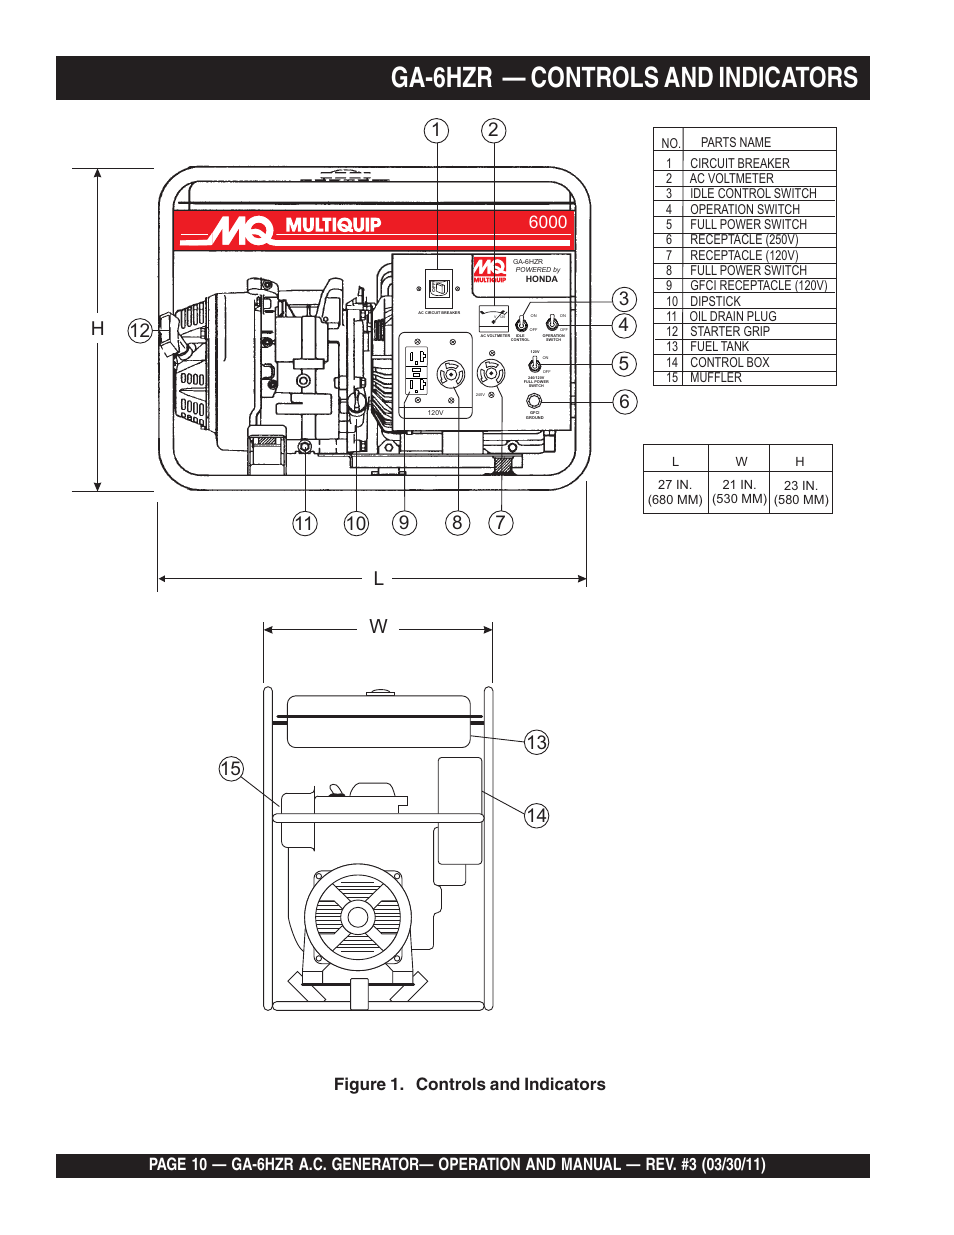 medium resolution of ga 6hzr controls and indicators figure 1 controls and indicators multiquip ga6hzr user manual page 10 70